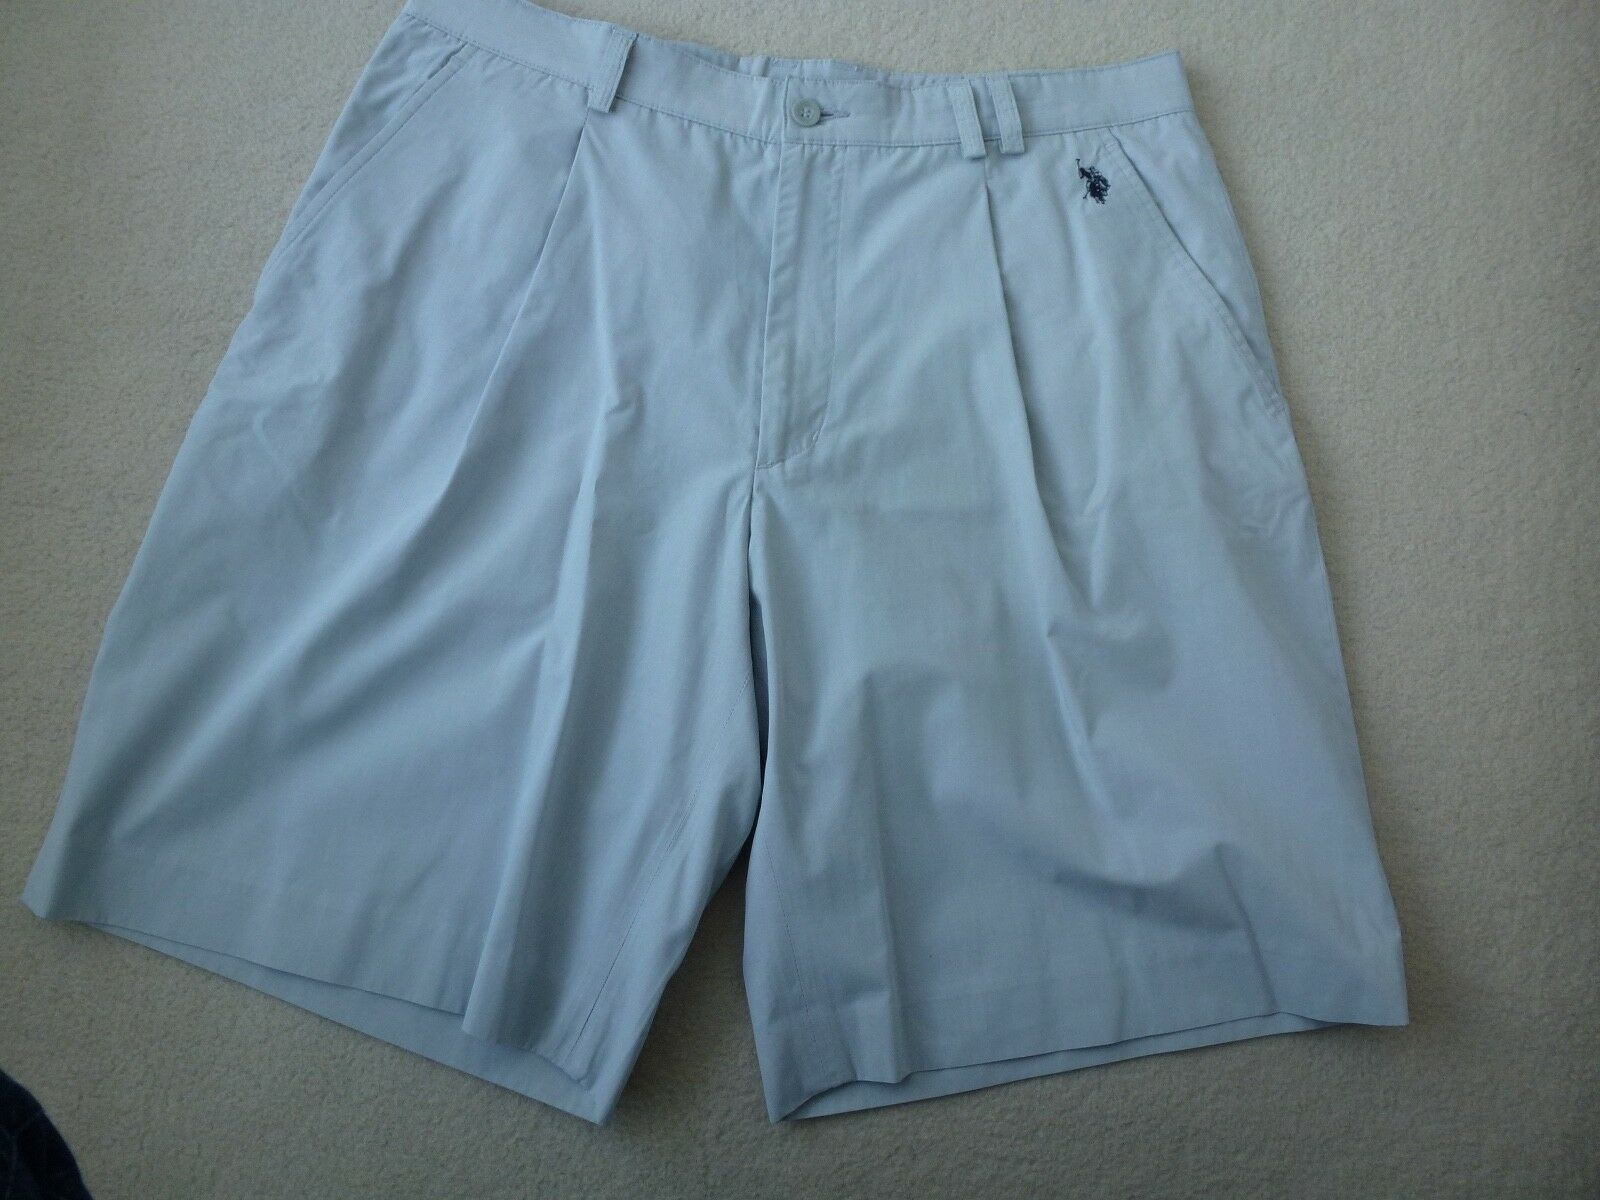 Hose - Herren - kurz - Gr. 52 - US Polo Sports